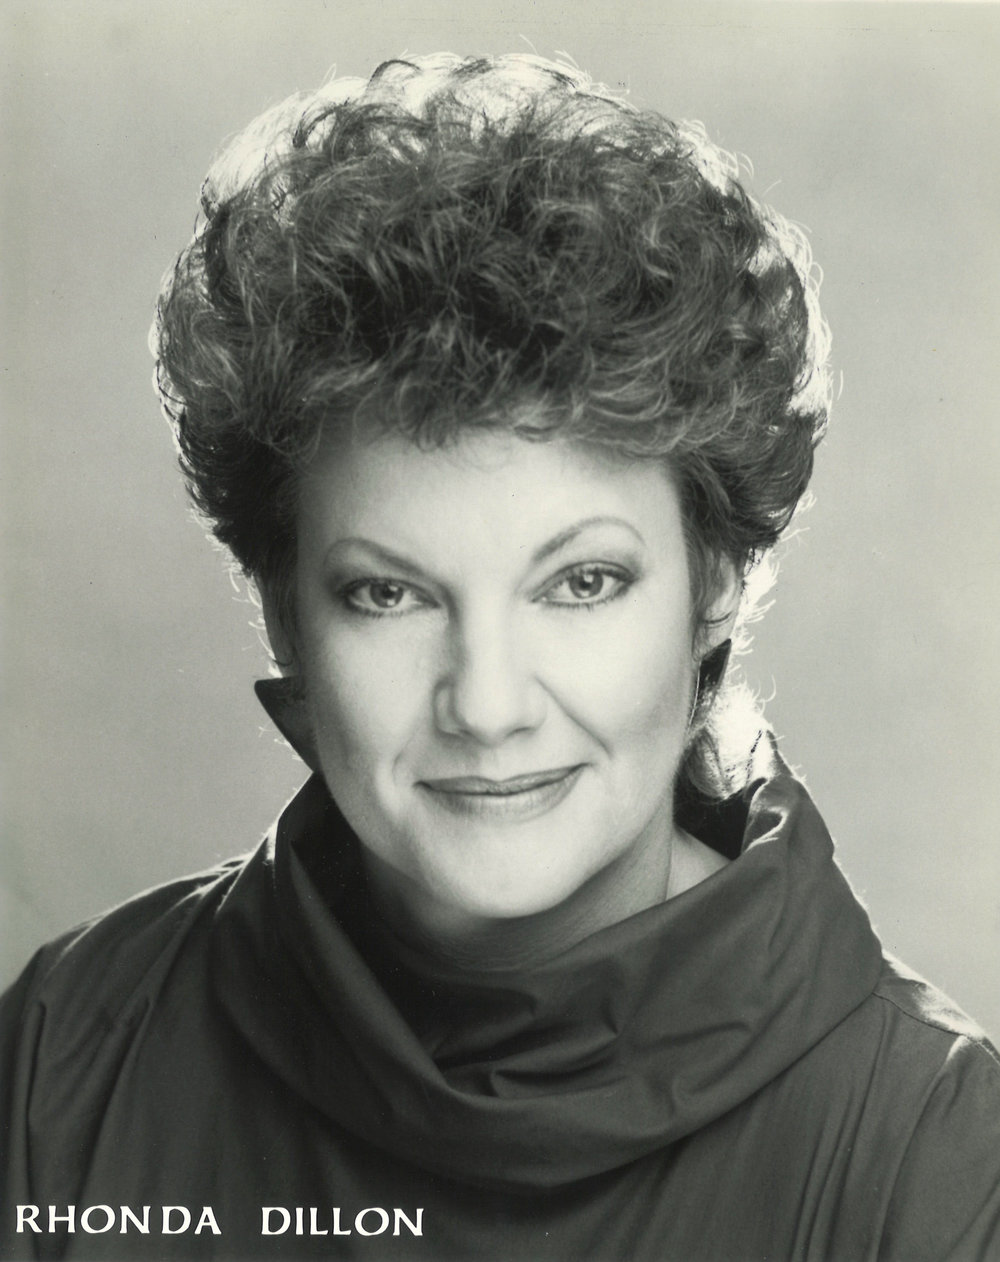 """Versatile singing actress, Rhonda Dillon, made her Broadway debut in 1988 in Sir Andrew Lloyd Webber's  The Phantom of the Opera.  She has subsequently appeared as both the prima donna """"Carlotta"""" and the ballet mistress """"Madame Giry"""" with every company in the United States! She holds a master's degree in choral conducting from the University of Southern California, where she toured Australia and New Zealand as a member of the USC Chamber Singers. She has sung with the LA Opera and was a featured nun in  The Firey Angel  by Prokovief. With the Los Angeles Master Chorale, she was a featured soloist at the Hollywood bowl. She toured the Western US as soloist with the Roger Wagner Chorale. Her voice can be heard on the soundtracks of such films as  Infidelity; Like Father Like Son; Burglar  and  Empire of the Sun.  Most recently Ms. Dillon created the role of Brenda in  Life Begins Again . Rhonda teaches at Cerritos College, El Camino College and College of the Canyons. She is on the board of NATS-Los Angeles as a director. Many of her students have won prestigious awards and are studying and teaching a new generation of singing artists!"""